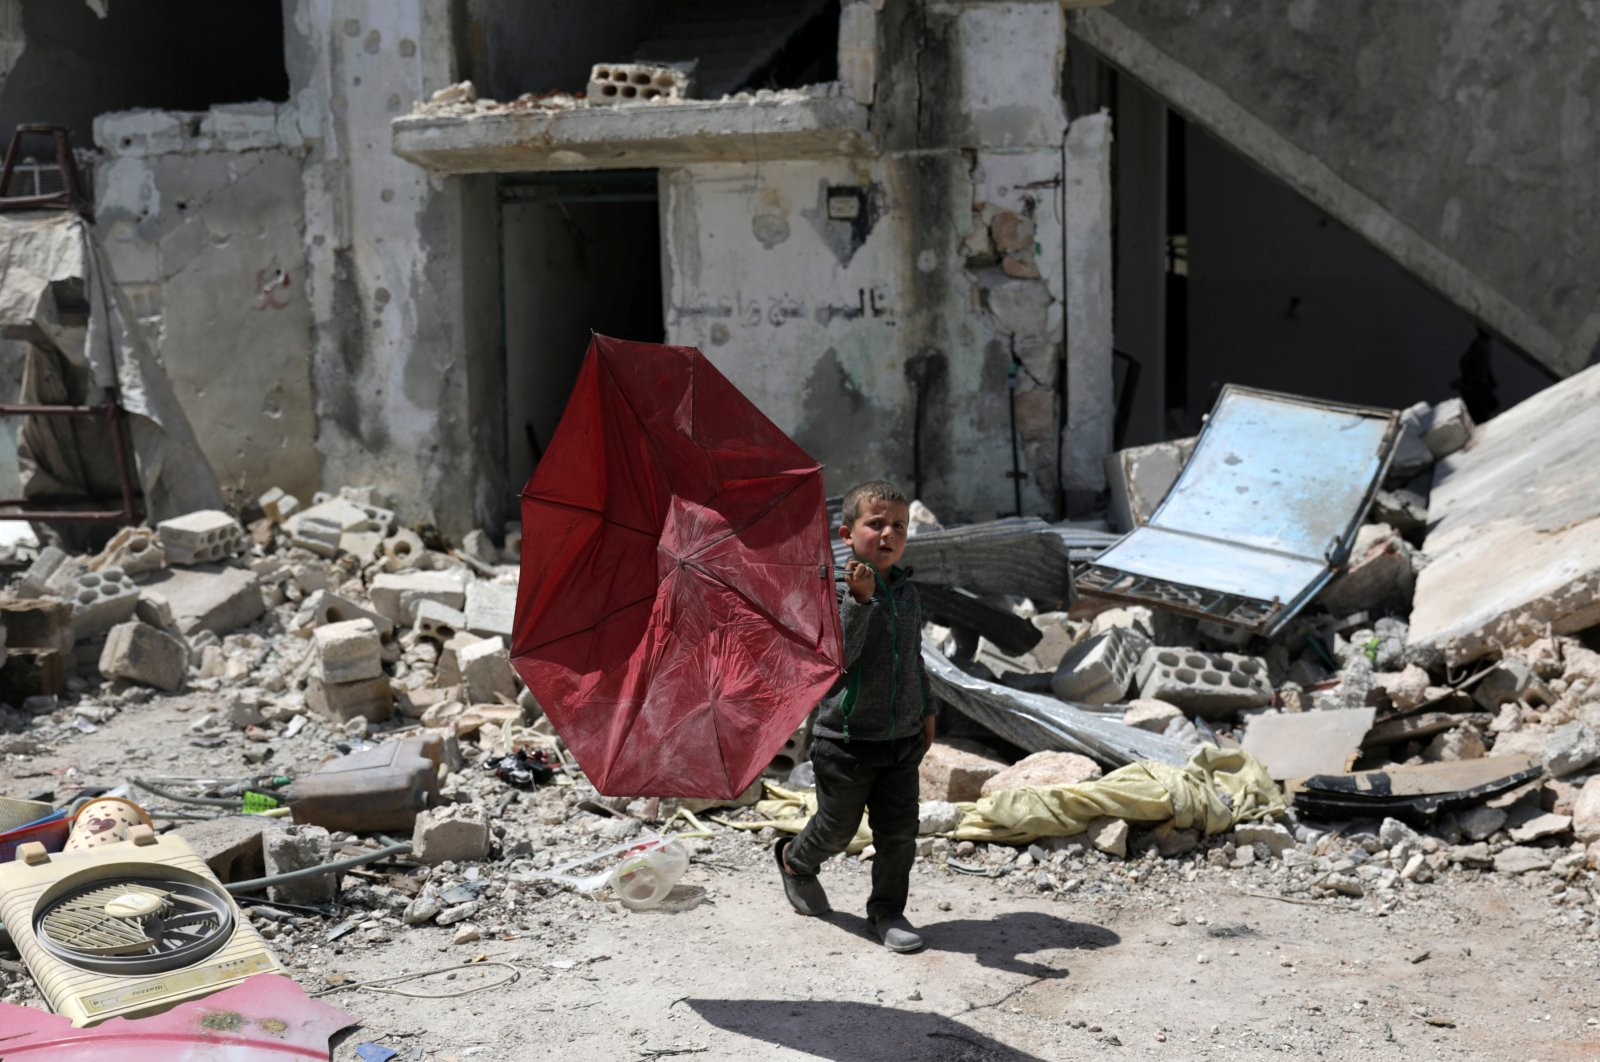 A boy carries a broken umbrella as he walks past a damaged building in the rebel-held town of Nairab, in northwest Syria's Idlib region, Syria, Friday, April 17, 2020. REUTERS